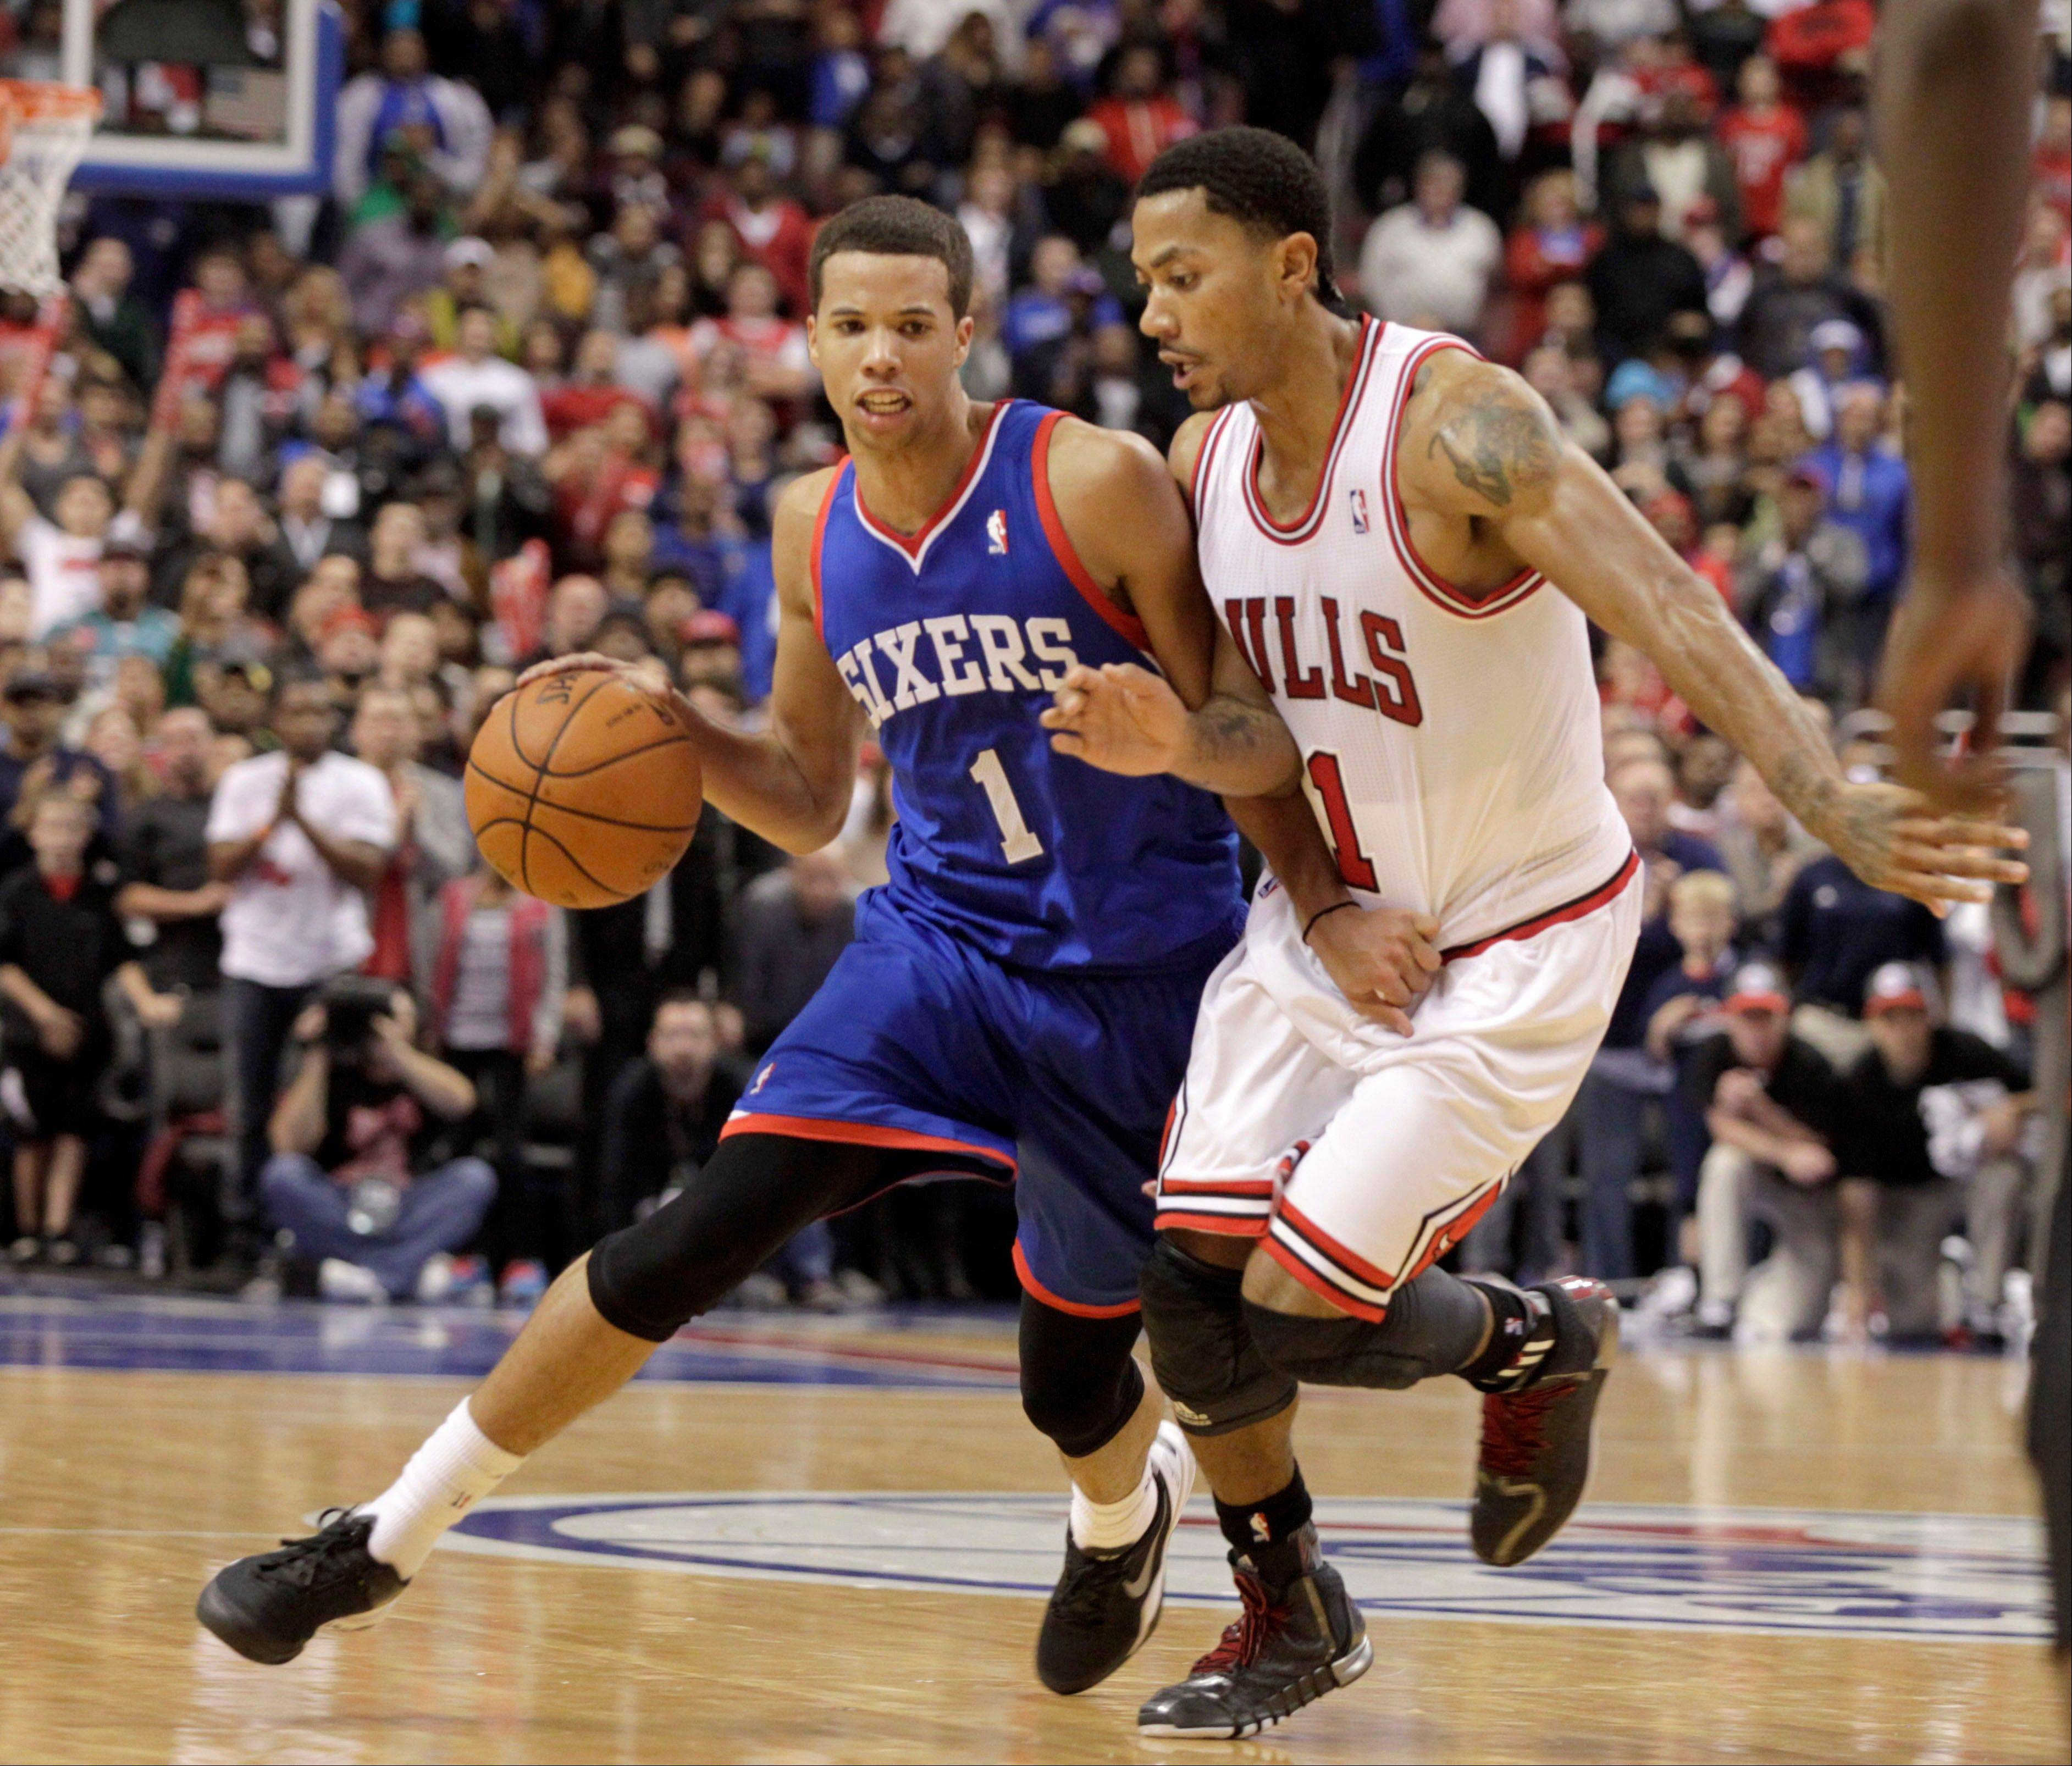 Derrick Rose, right, defends as Philadelphia 76ers' Michael Carter-Williams (1) moves the ball up the court in the second half of an NBA basketball game Saturday Nov. 2, 2013, in Philadelphia. The 76ers won 107-104.